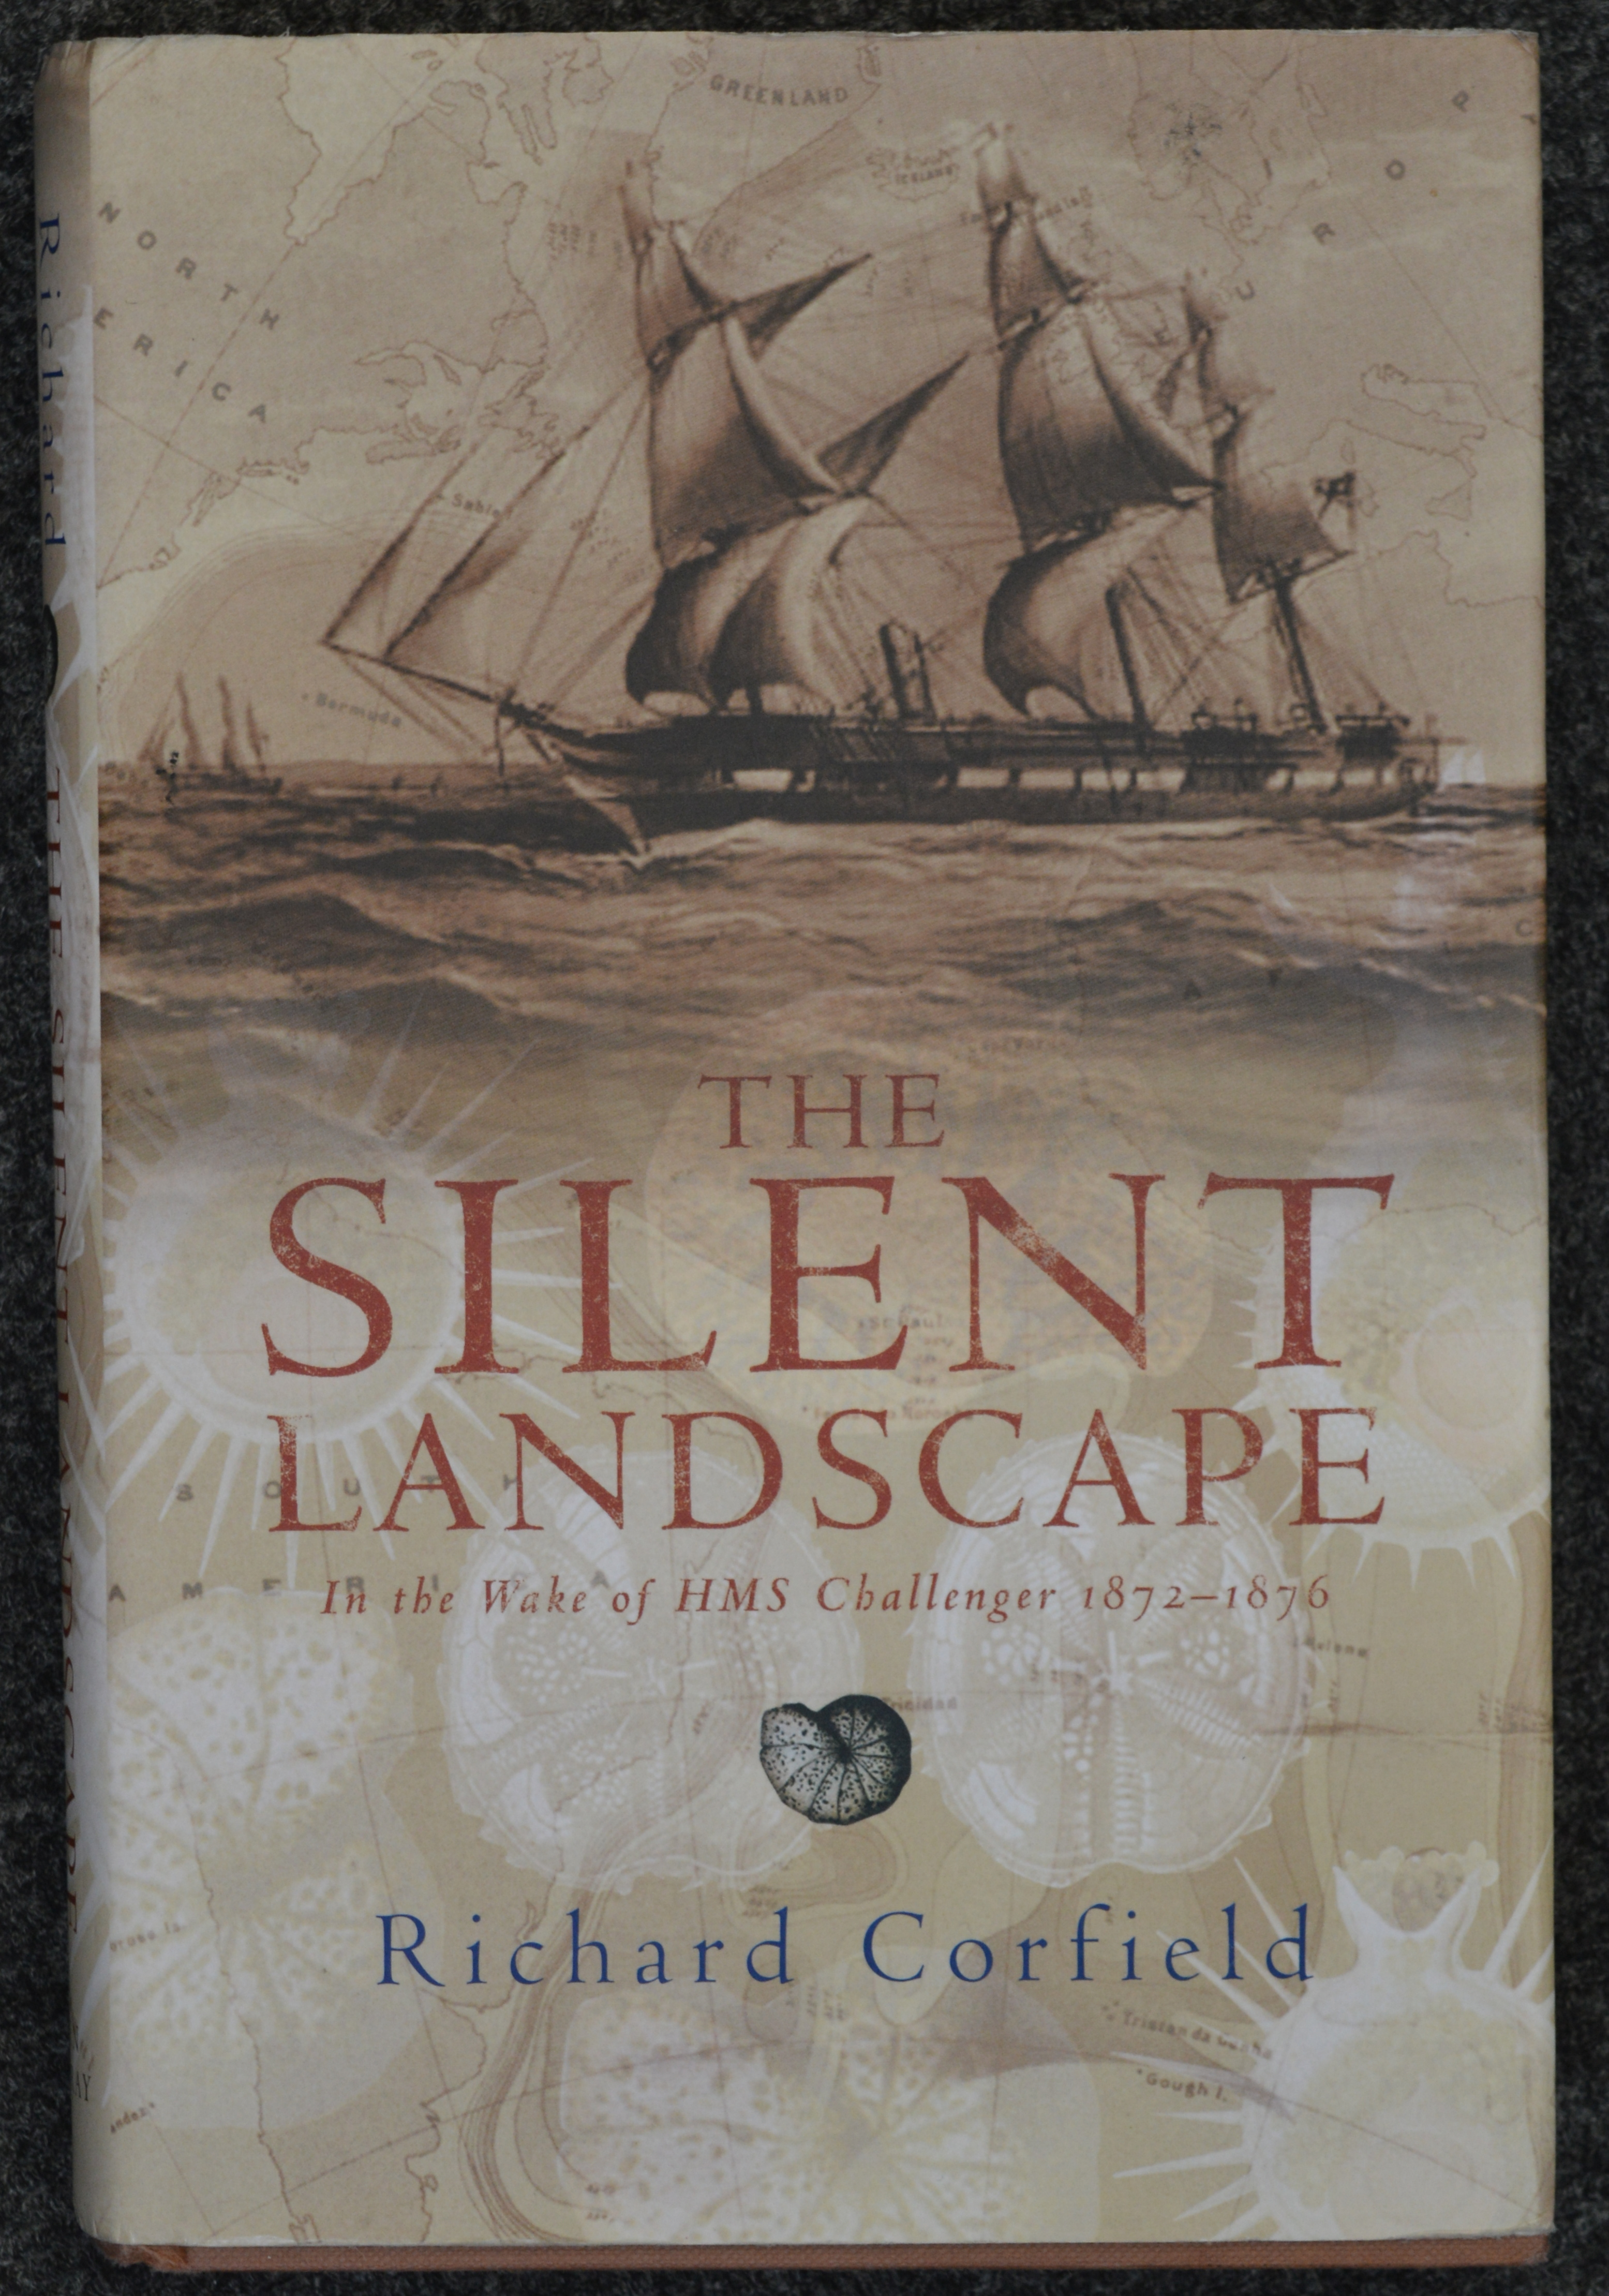 The Silent Landscape In the Wake of HMS Challenger 1872-1876 by Richard Corfield